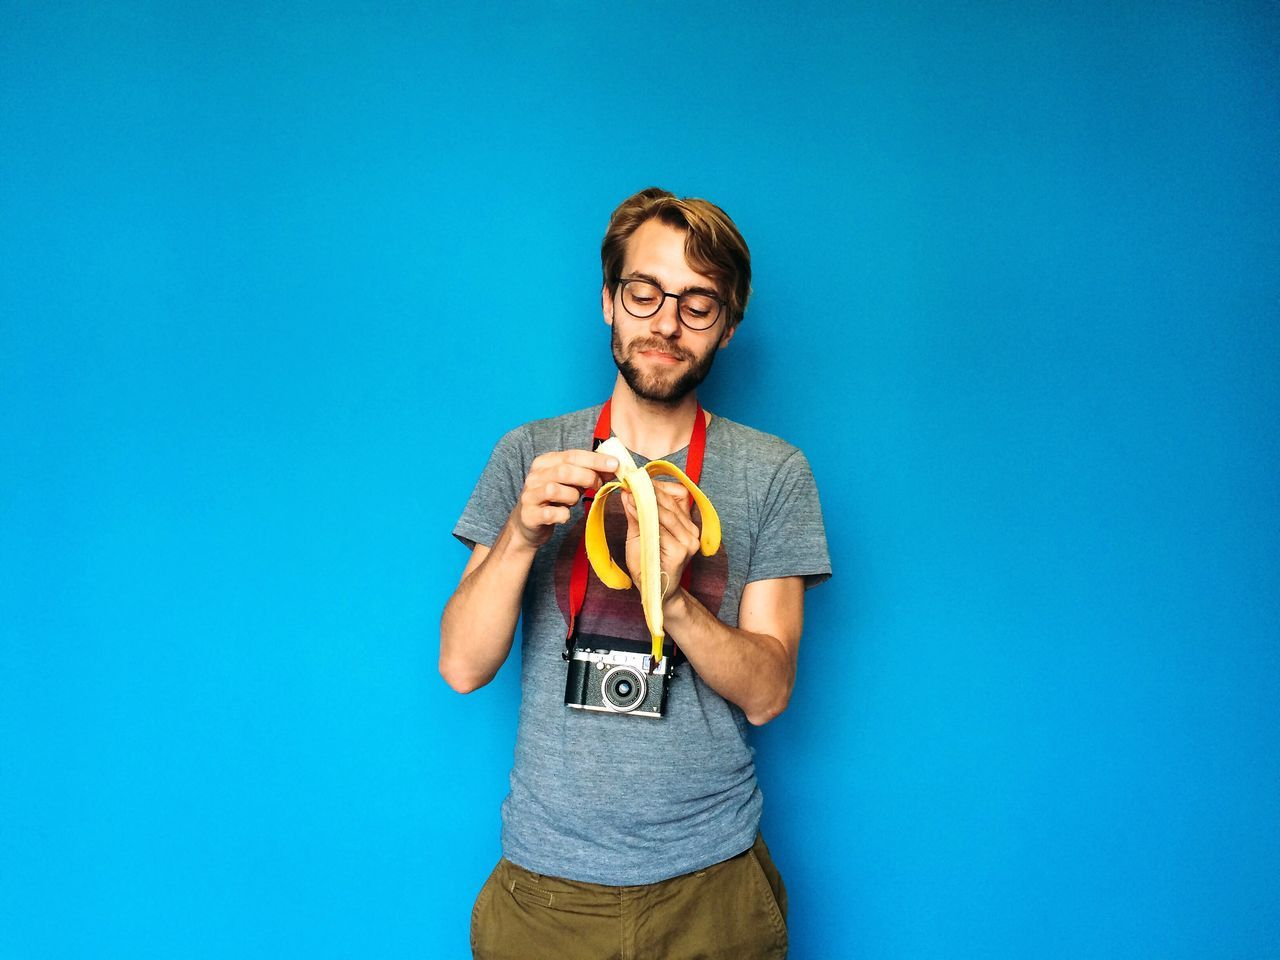 PORTRAIT OF HIPSTER MAN STANDING IN FRONT OF BLUE WALL